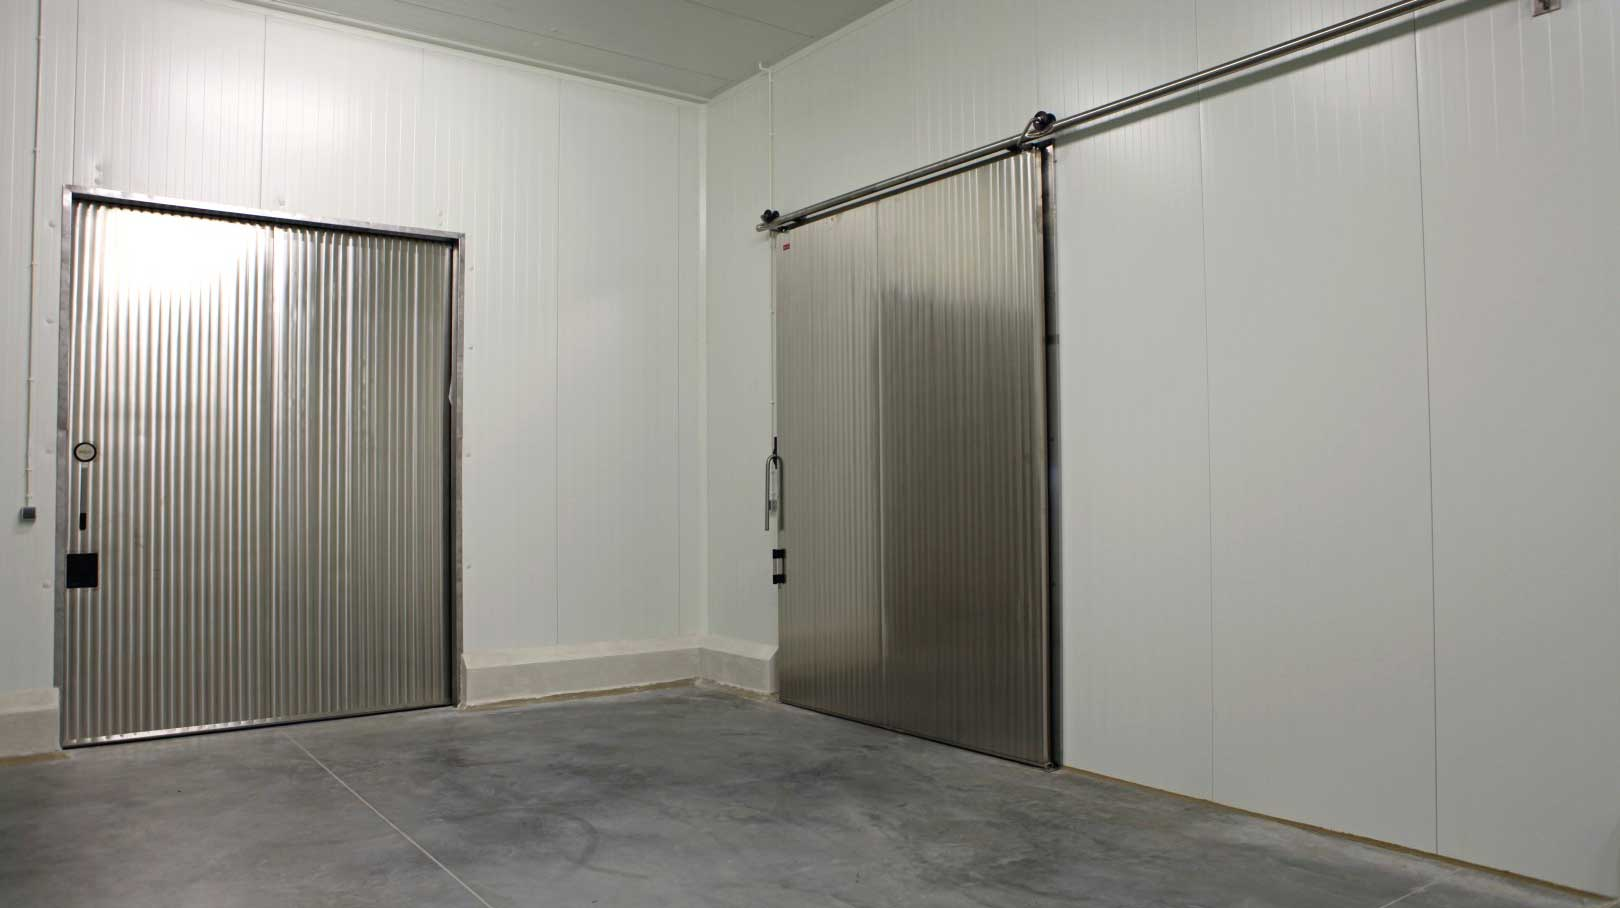 stainless-steel-doors-blog-ulti-group-3.29.2016